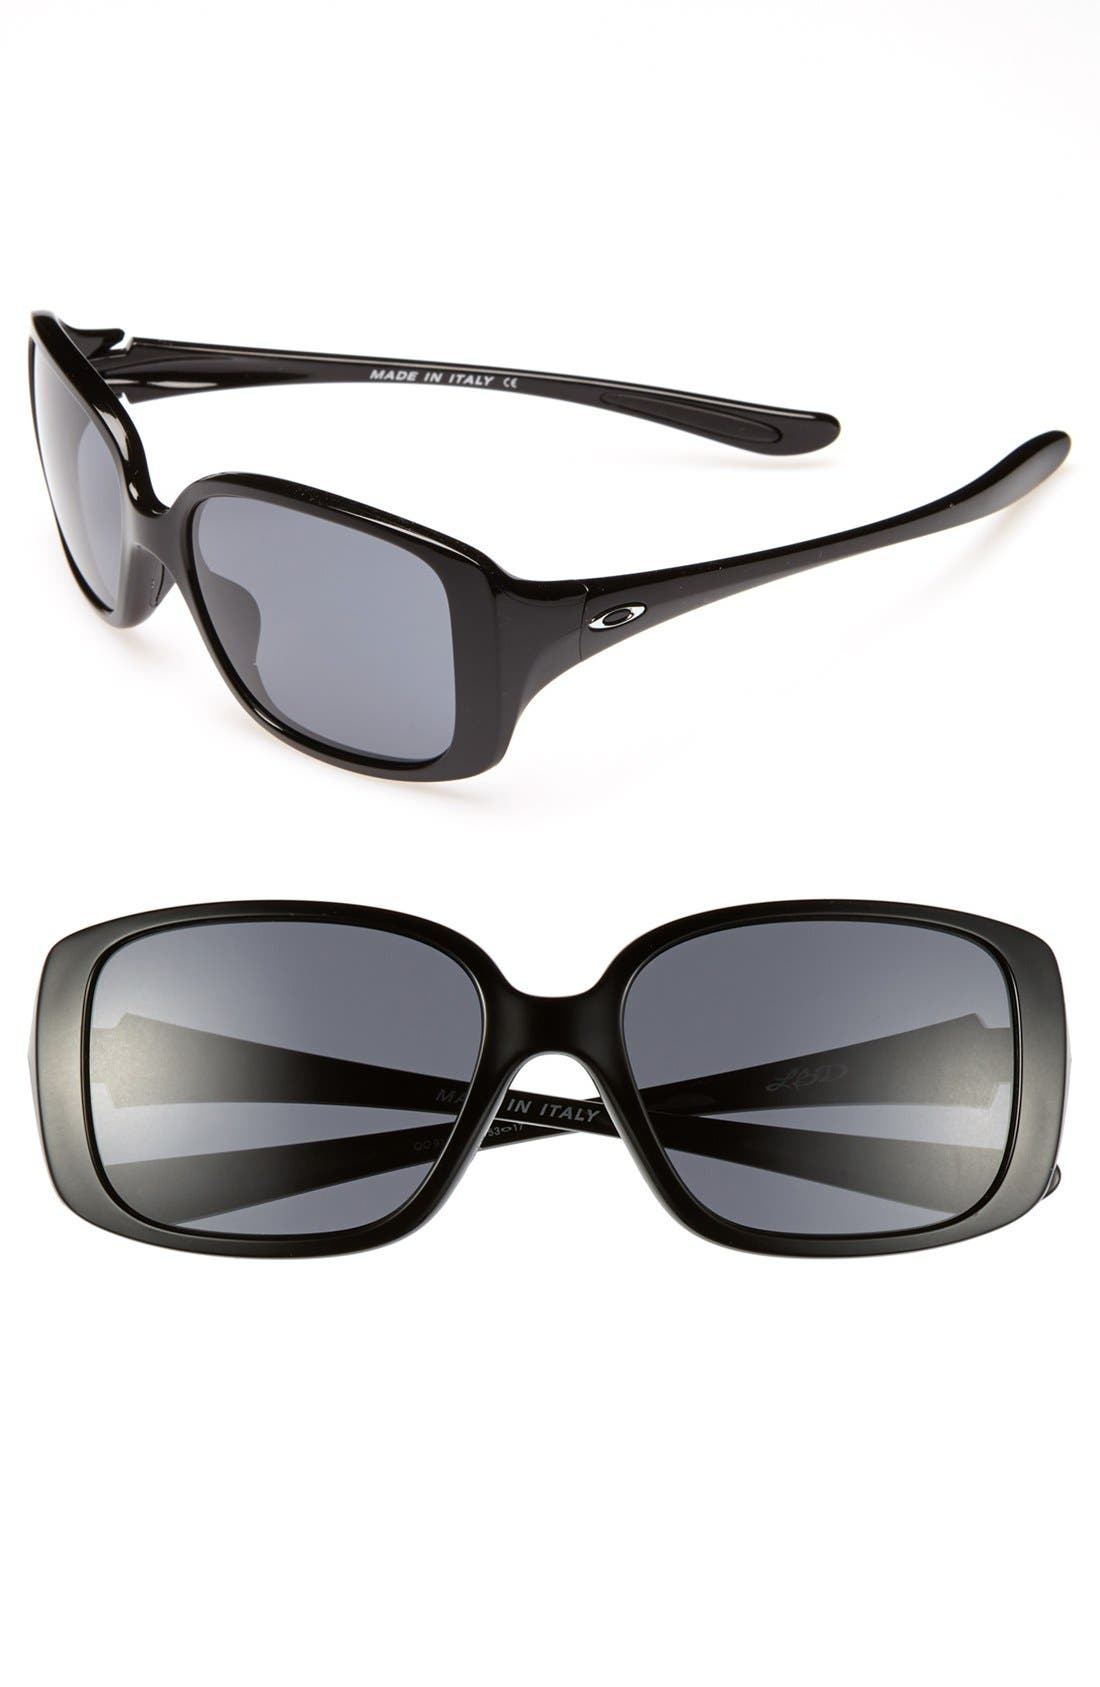 Alternate Image 1 Selected - Oakley 'LBD' 53mm Sunglasses